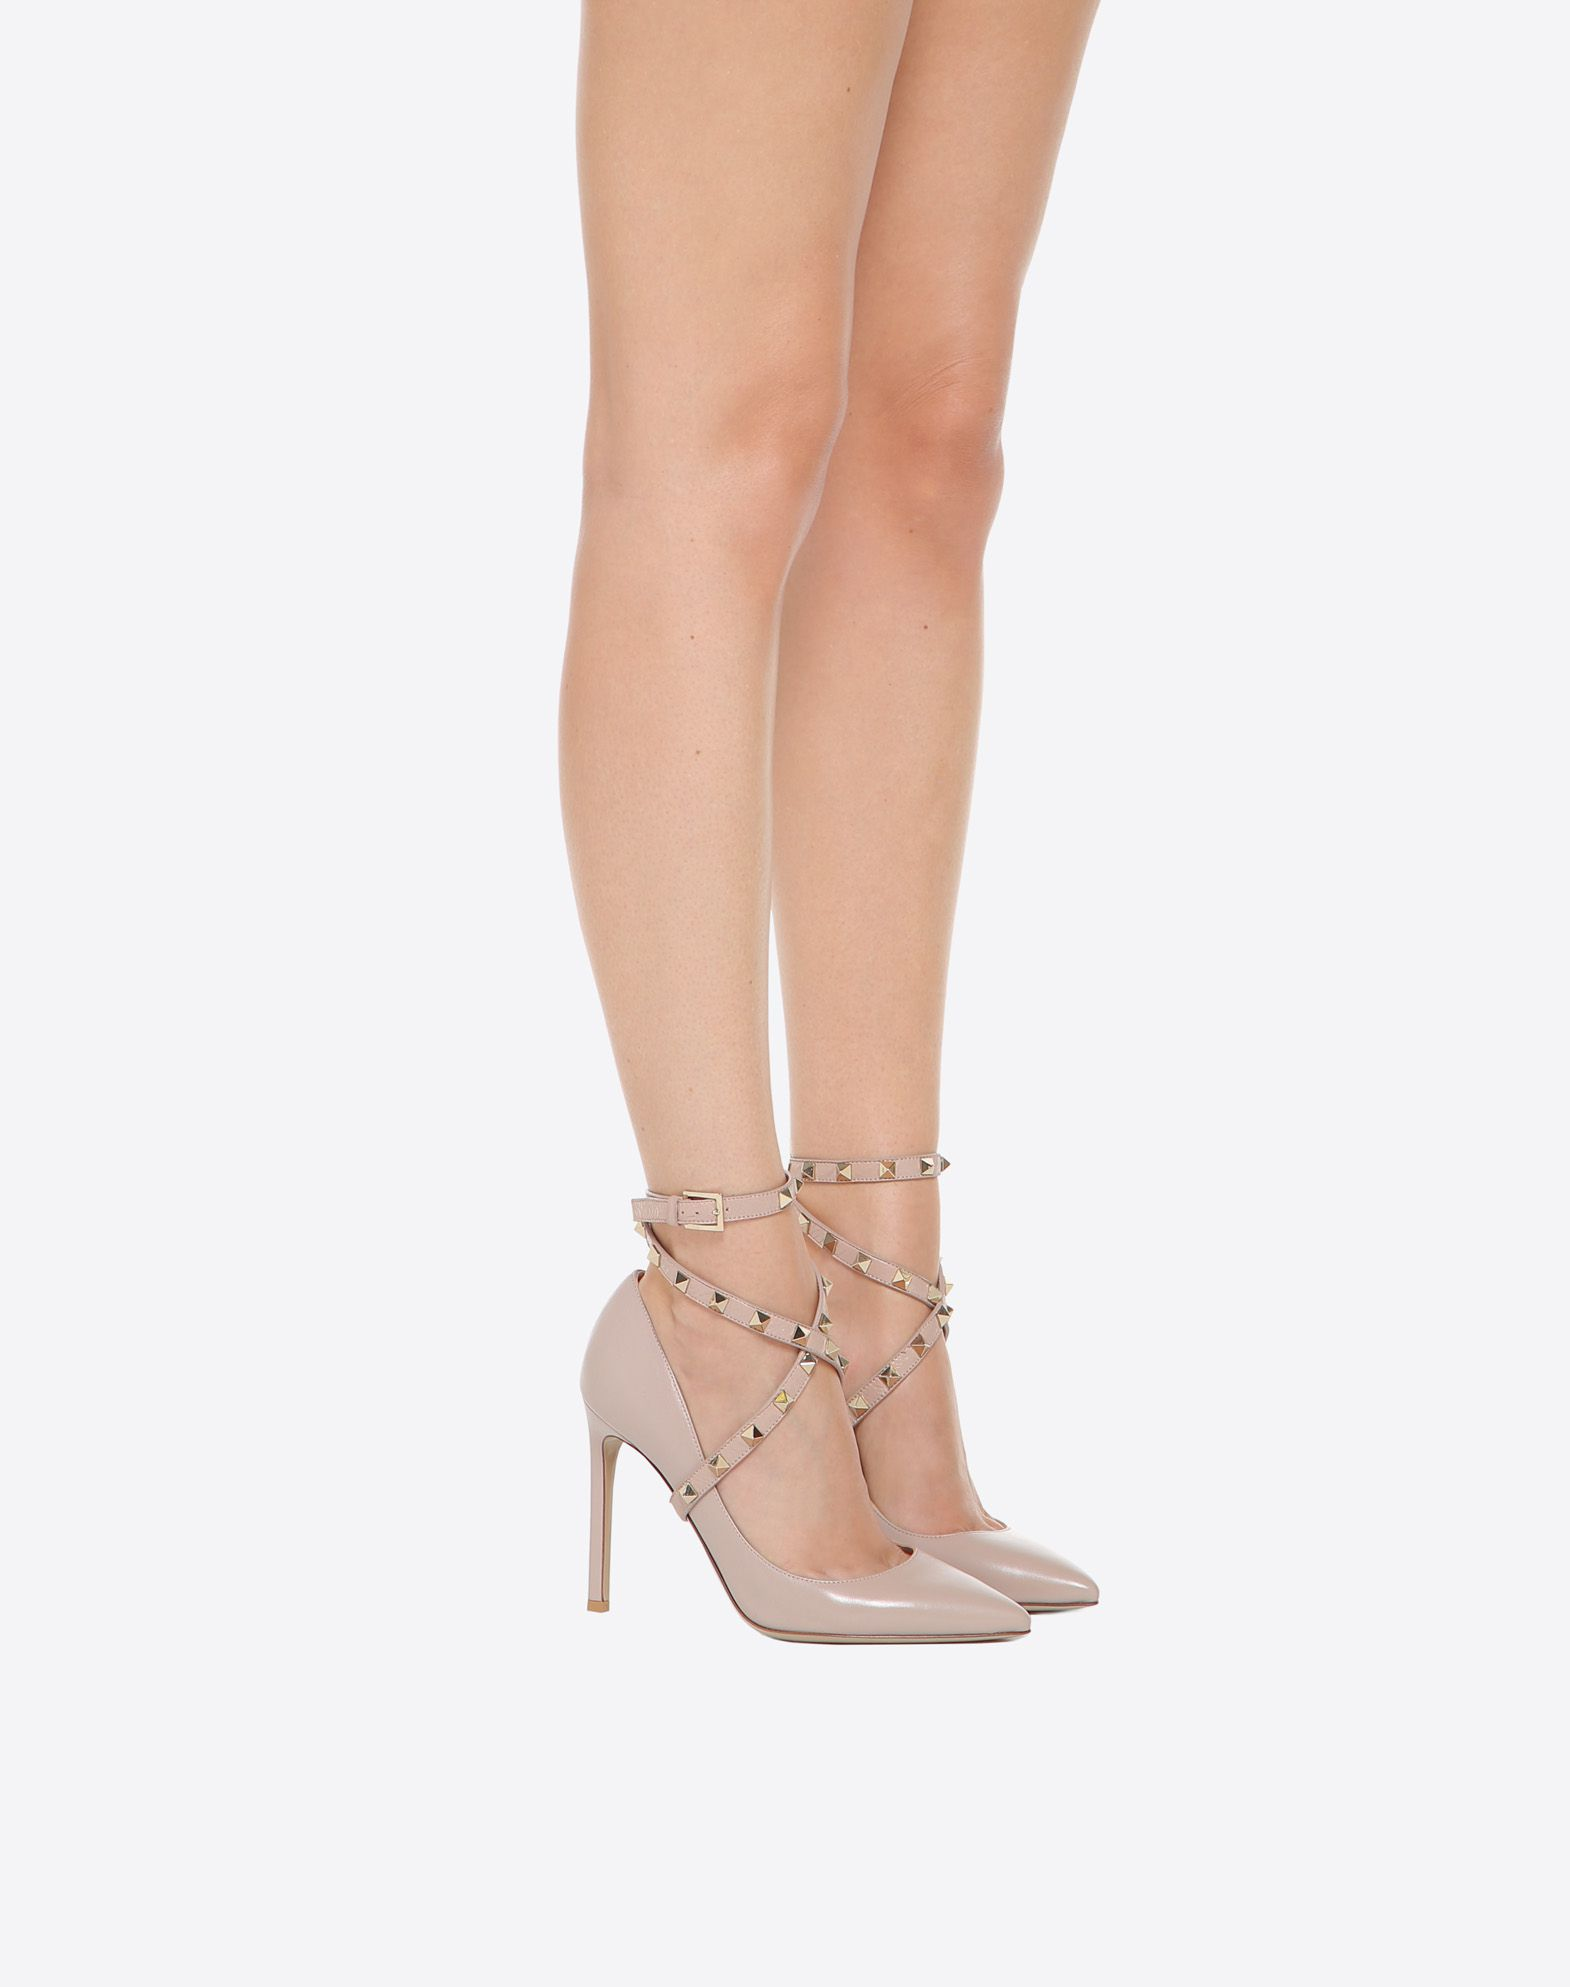 Valentino Studwrap Leather Ankle-Strap Pumps cPPr5Jb